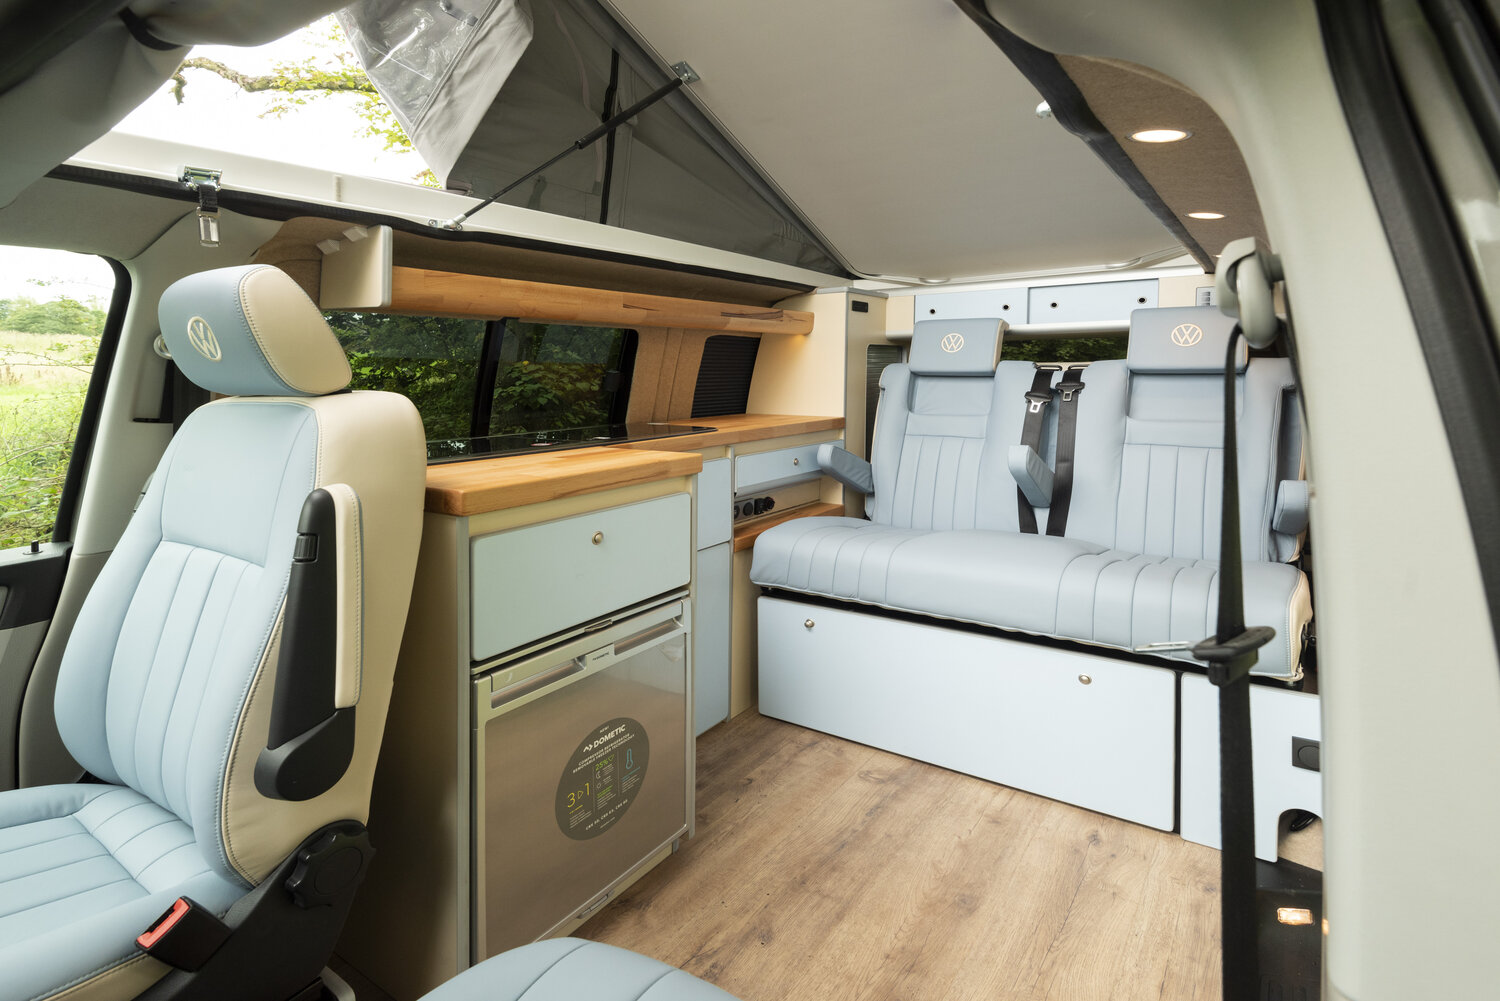 VW Transporter Conversion from Wildworx Alcester